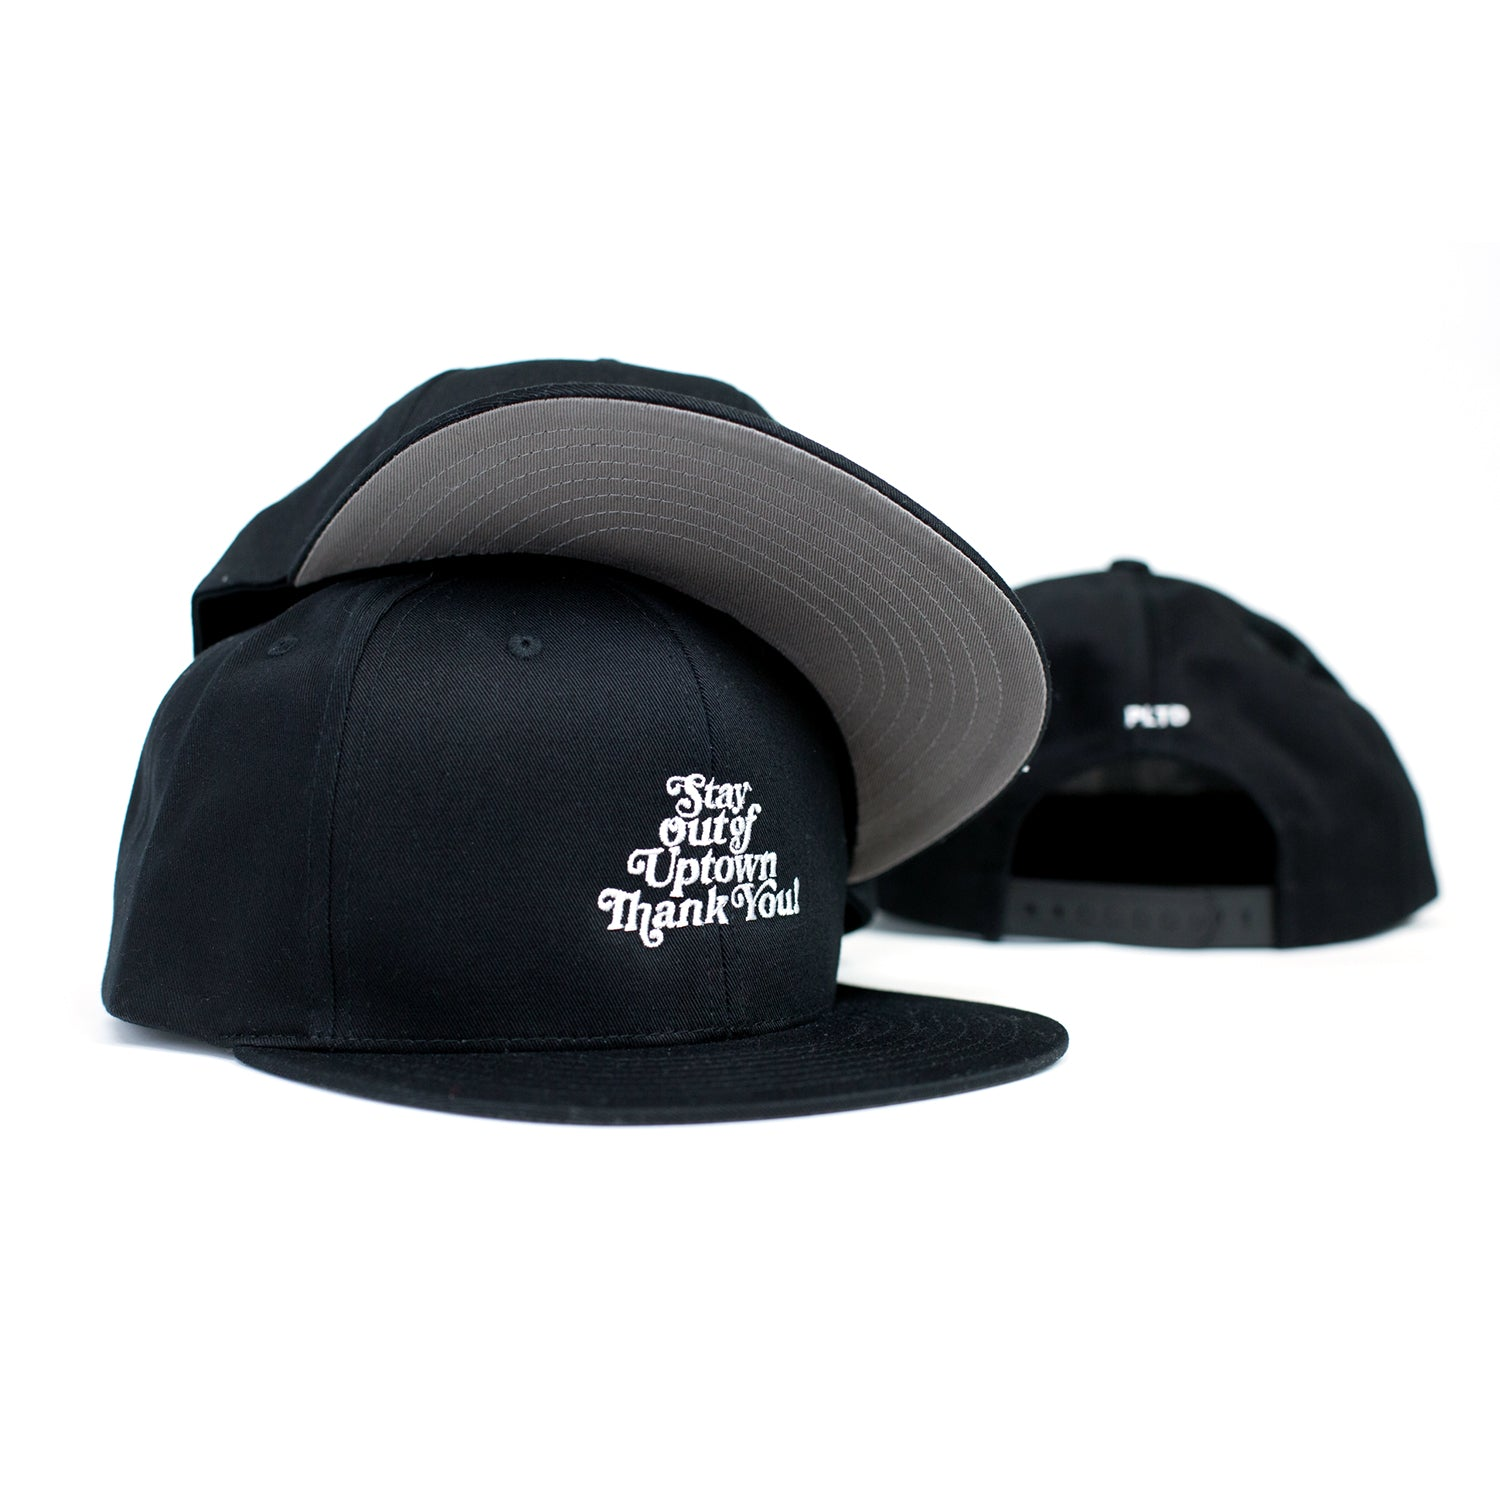 Stay Out of Uptown Snapback (Black)